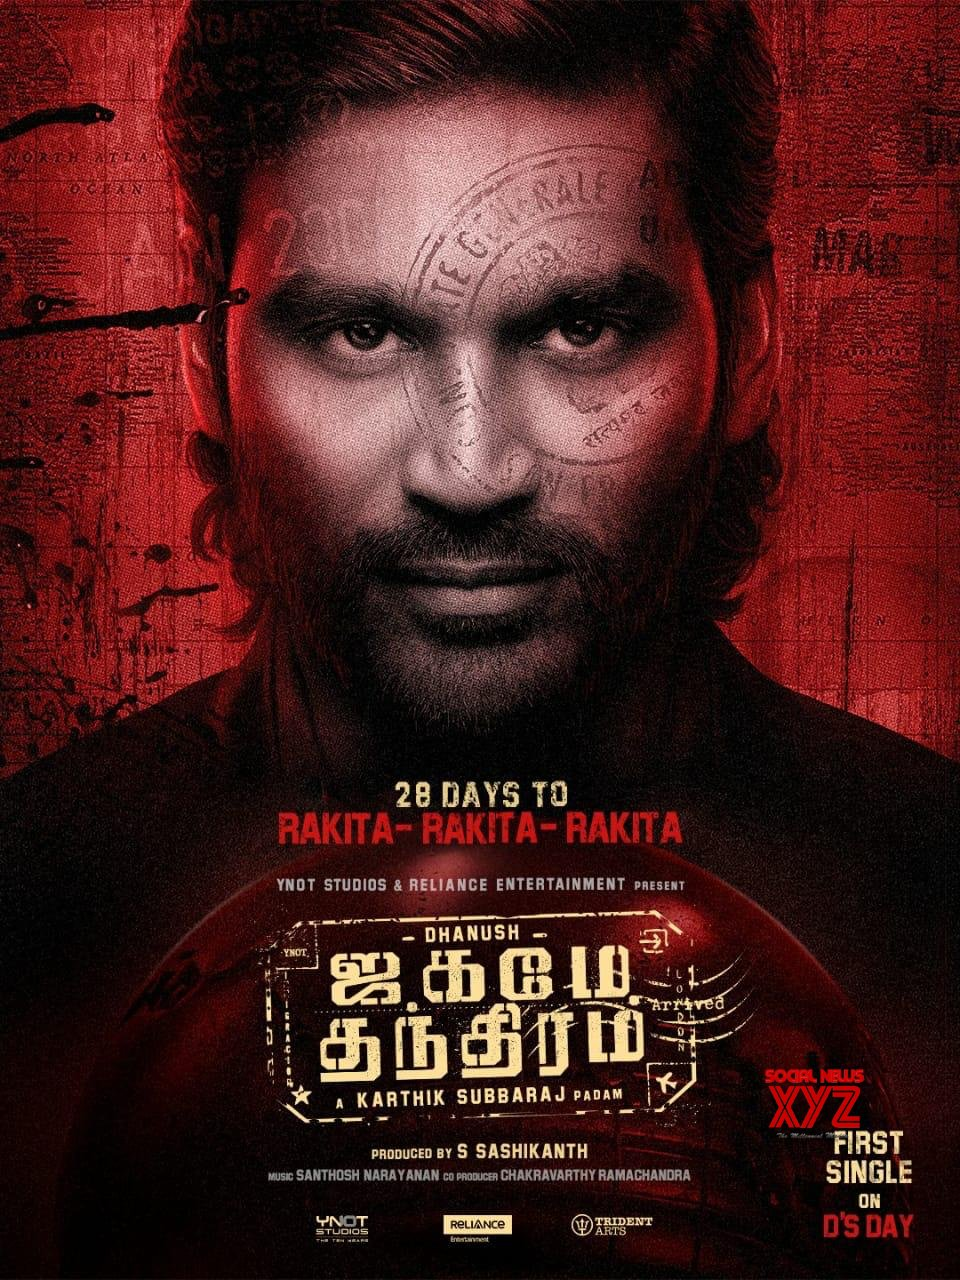 Dhanush's Jagame Thanthiram Movie First Single From July 28